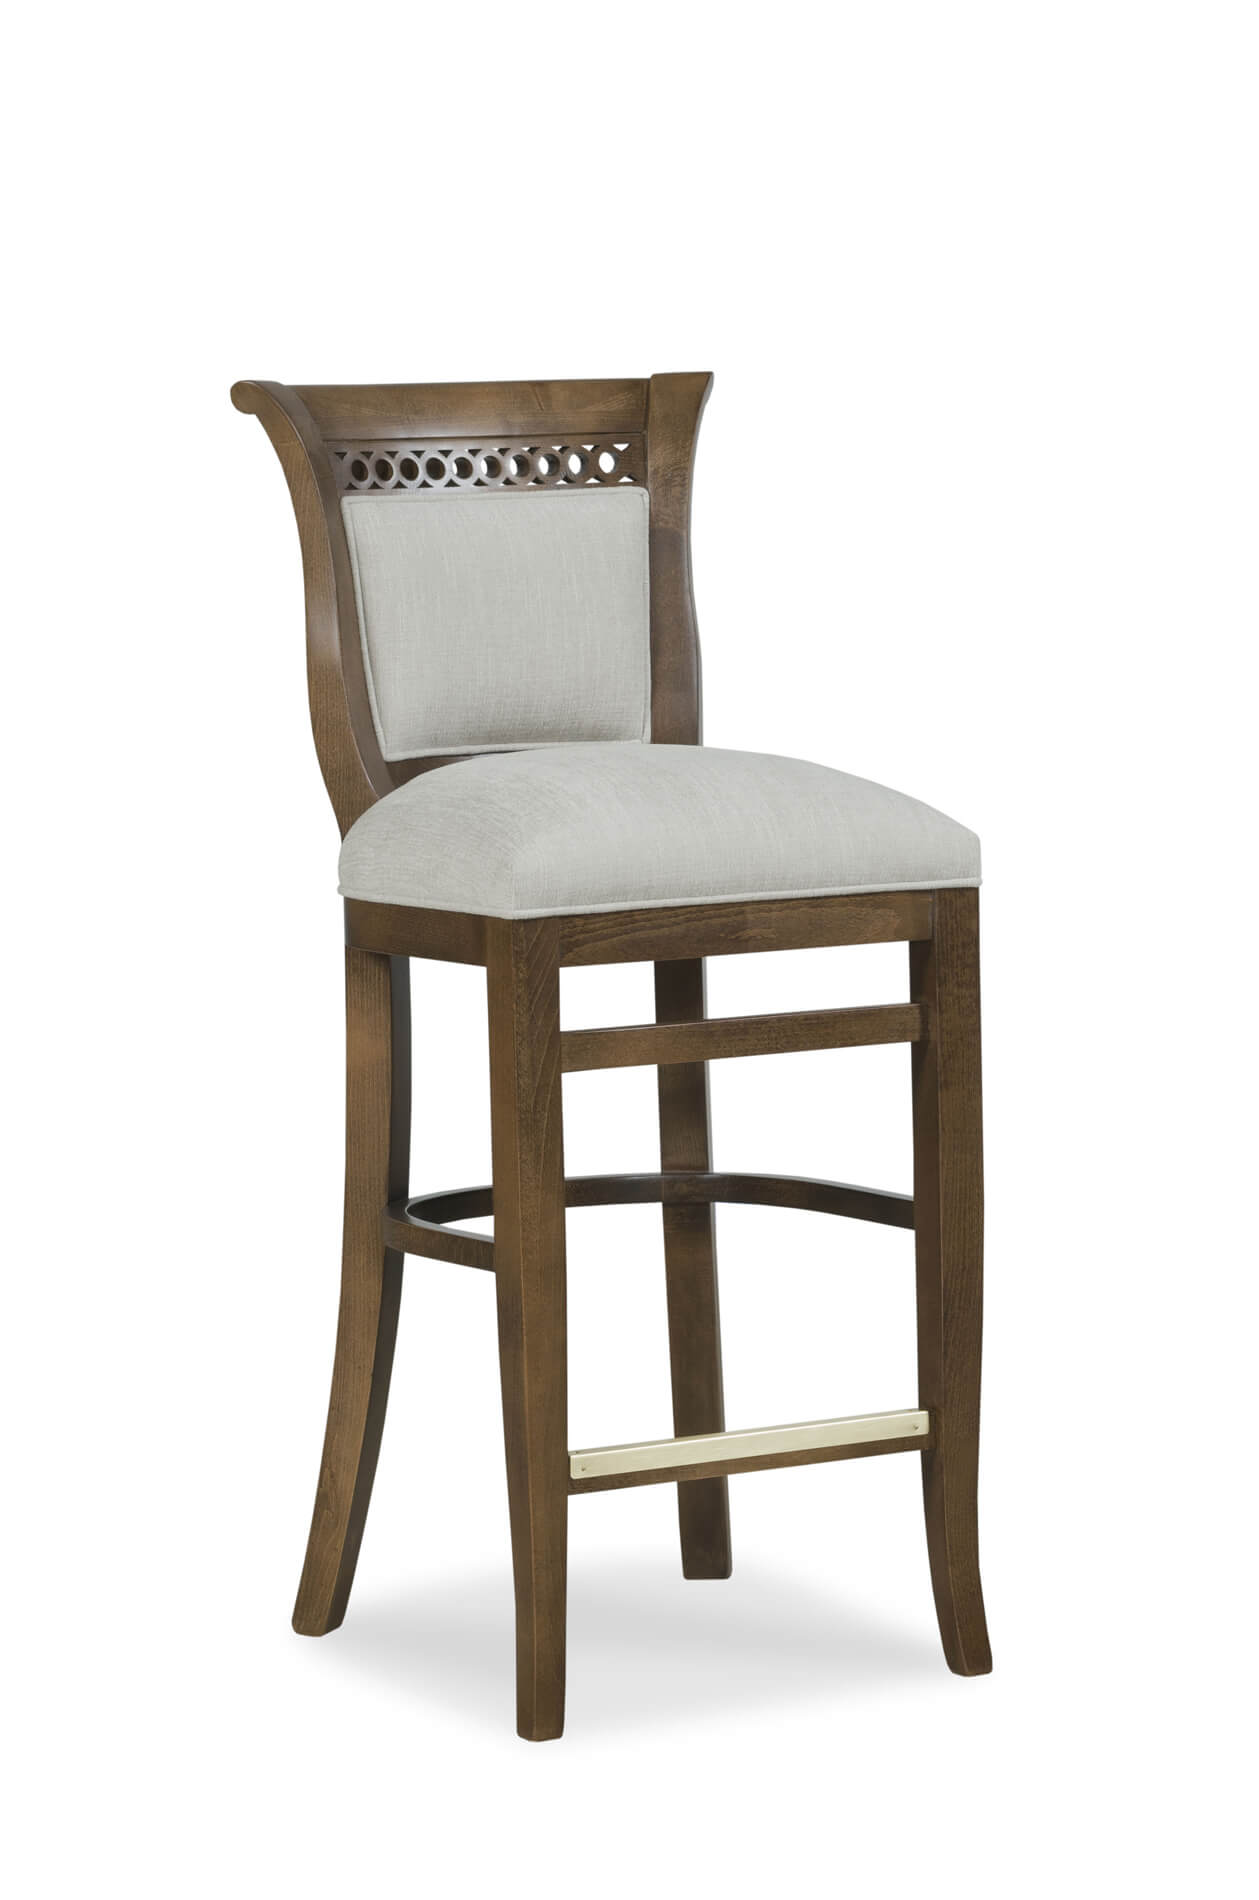 Fairfieldu0027s Dana Wooden Bar Stool With Low Backrest